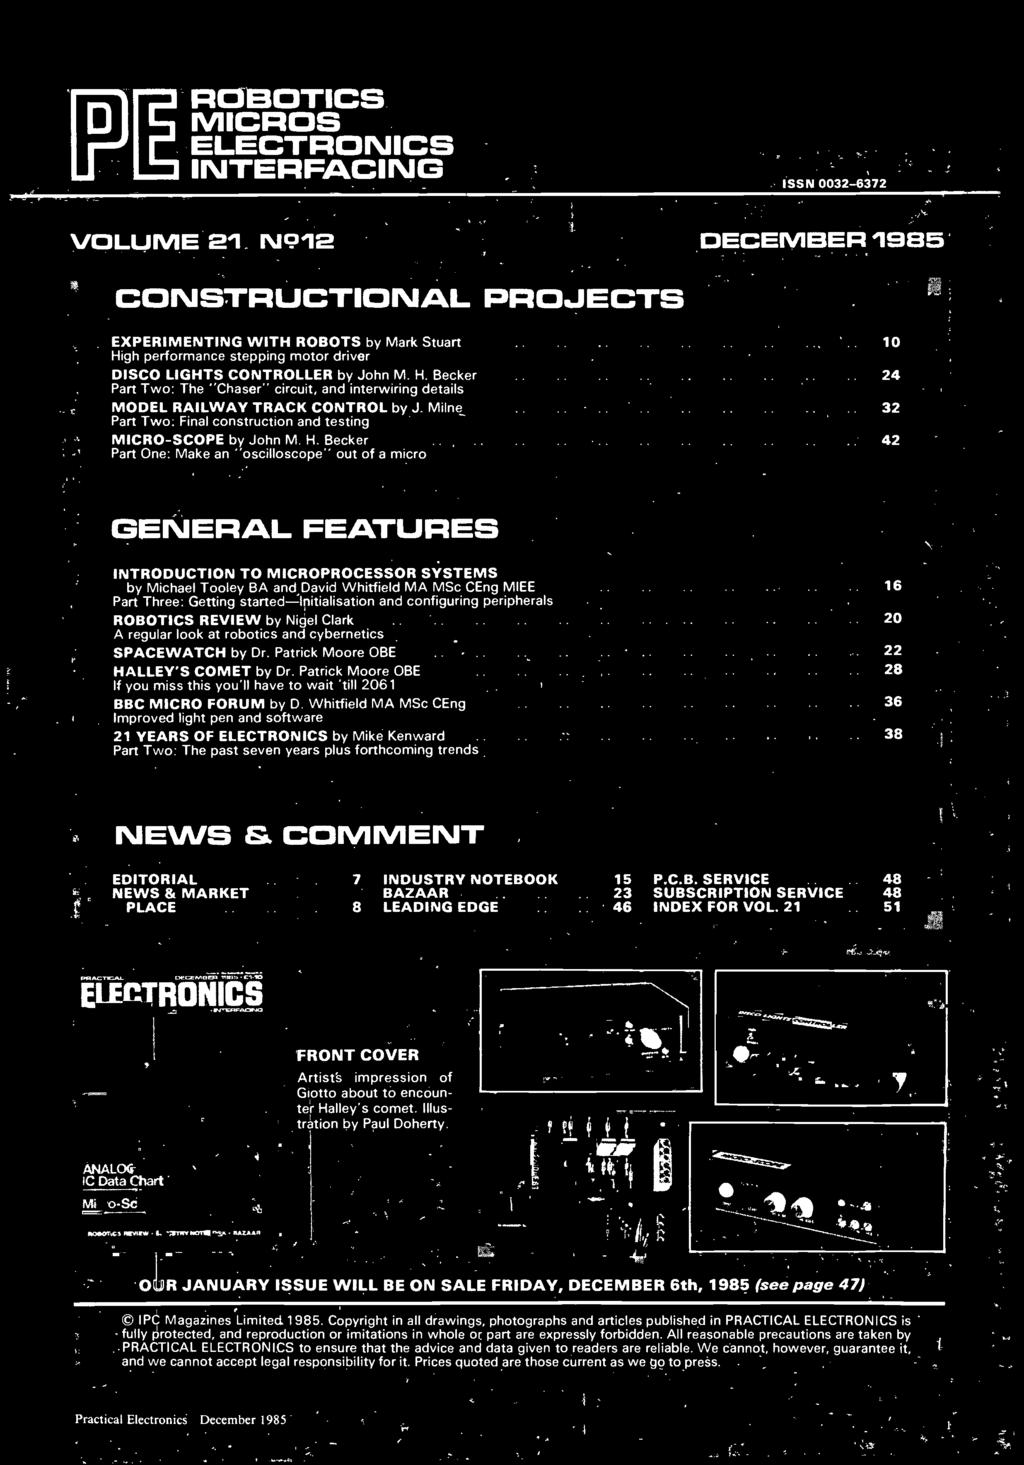 Robotics Review Industry Notebook Bazaar Pdf 1992 Ford F259 7 3 Fuse Diagram By Michael Tooley Ba And David Whitfield Ma Msc Ceng Miee 16 Part Three Getting